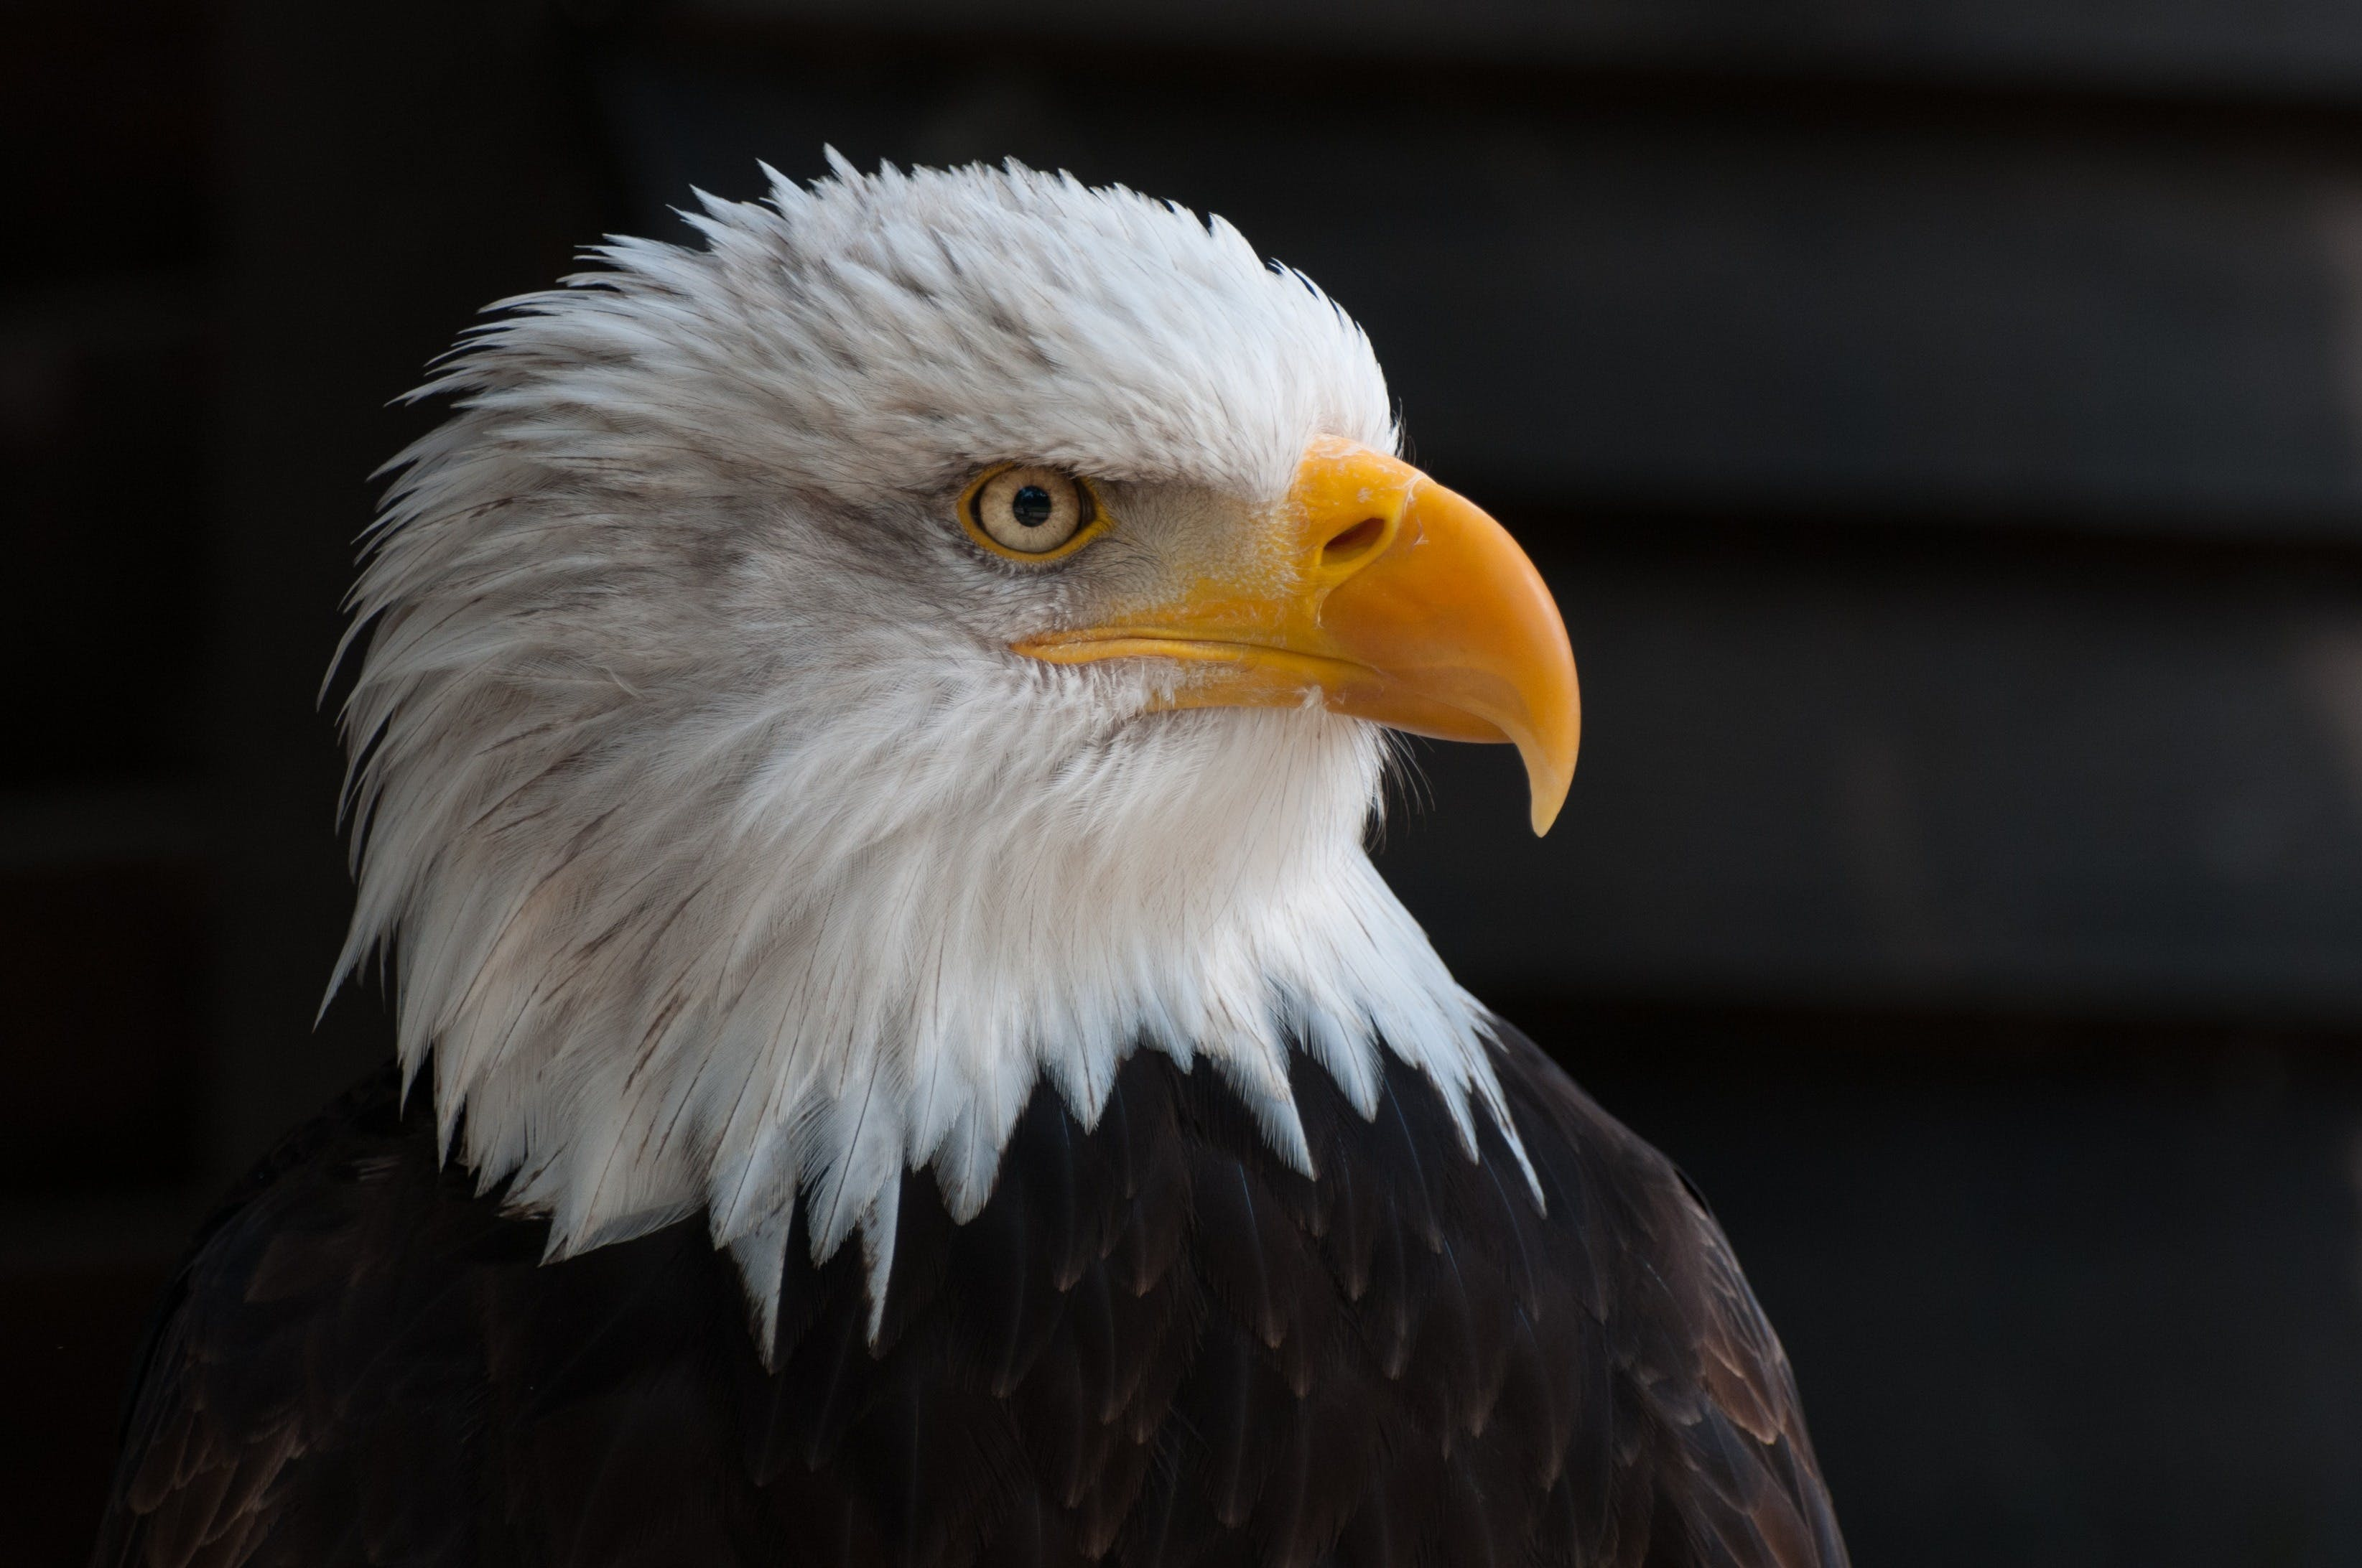 Close Photography of Bald Eagle